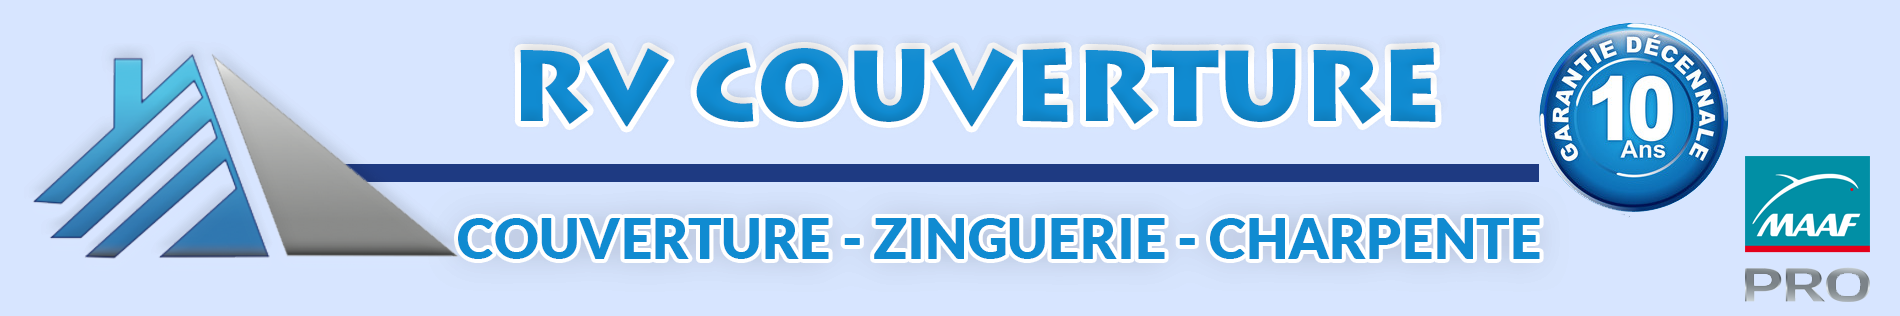 RV couverture